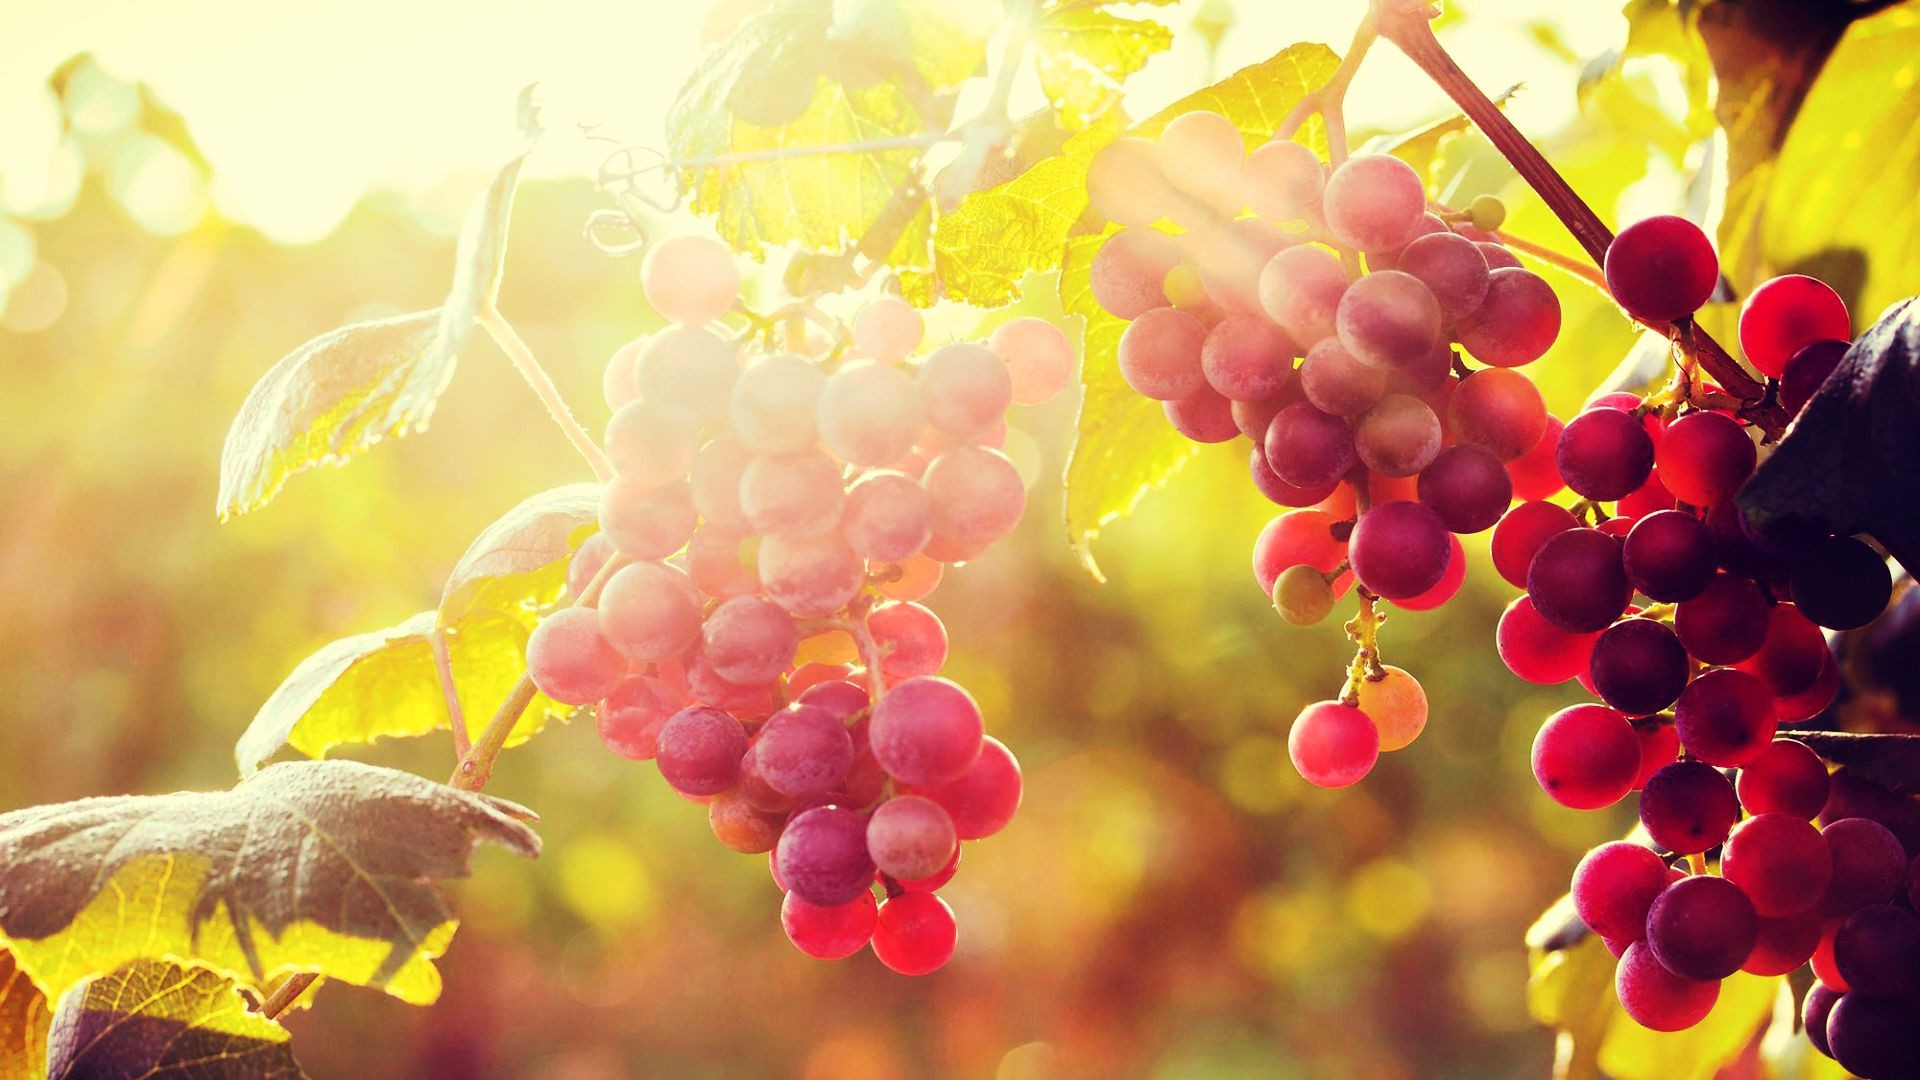 Sun With Grapes Desktop Background HD Wallpapers Widescreen 1920x1080